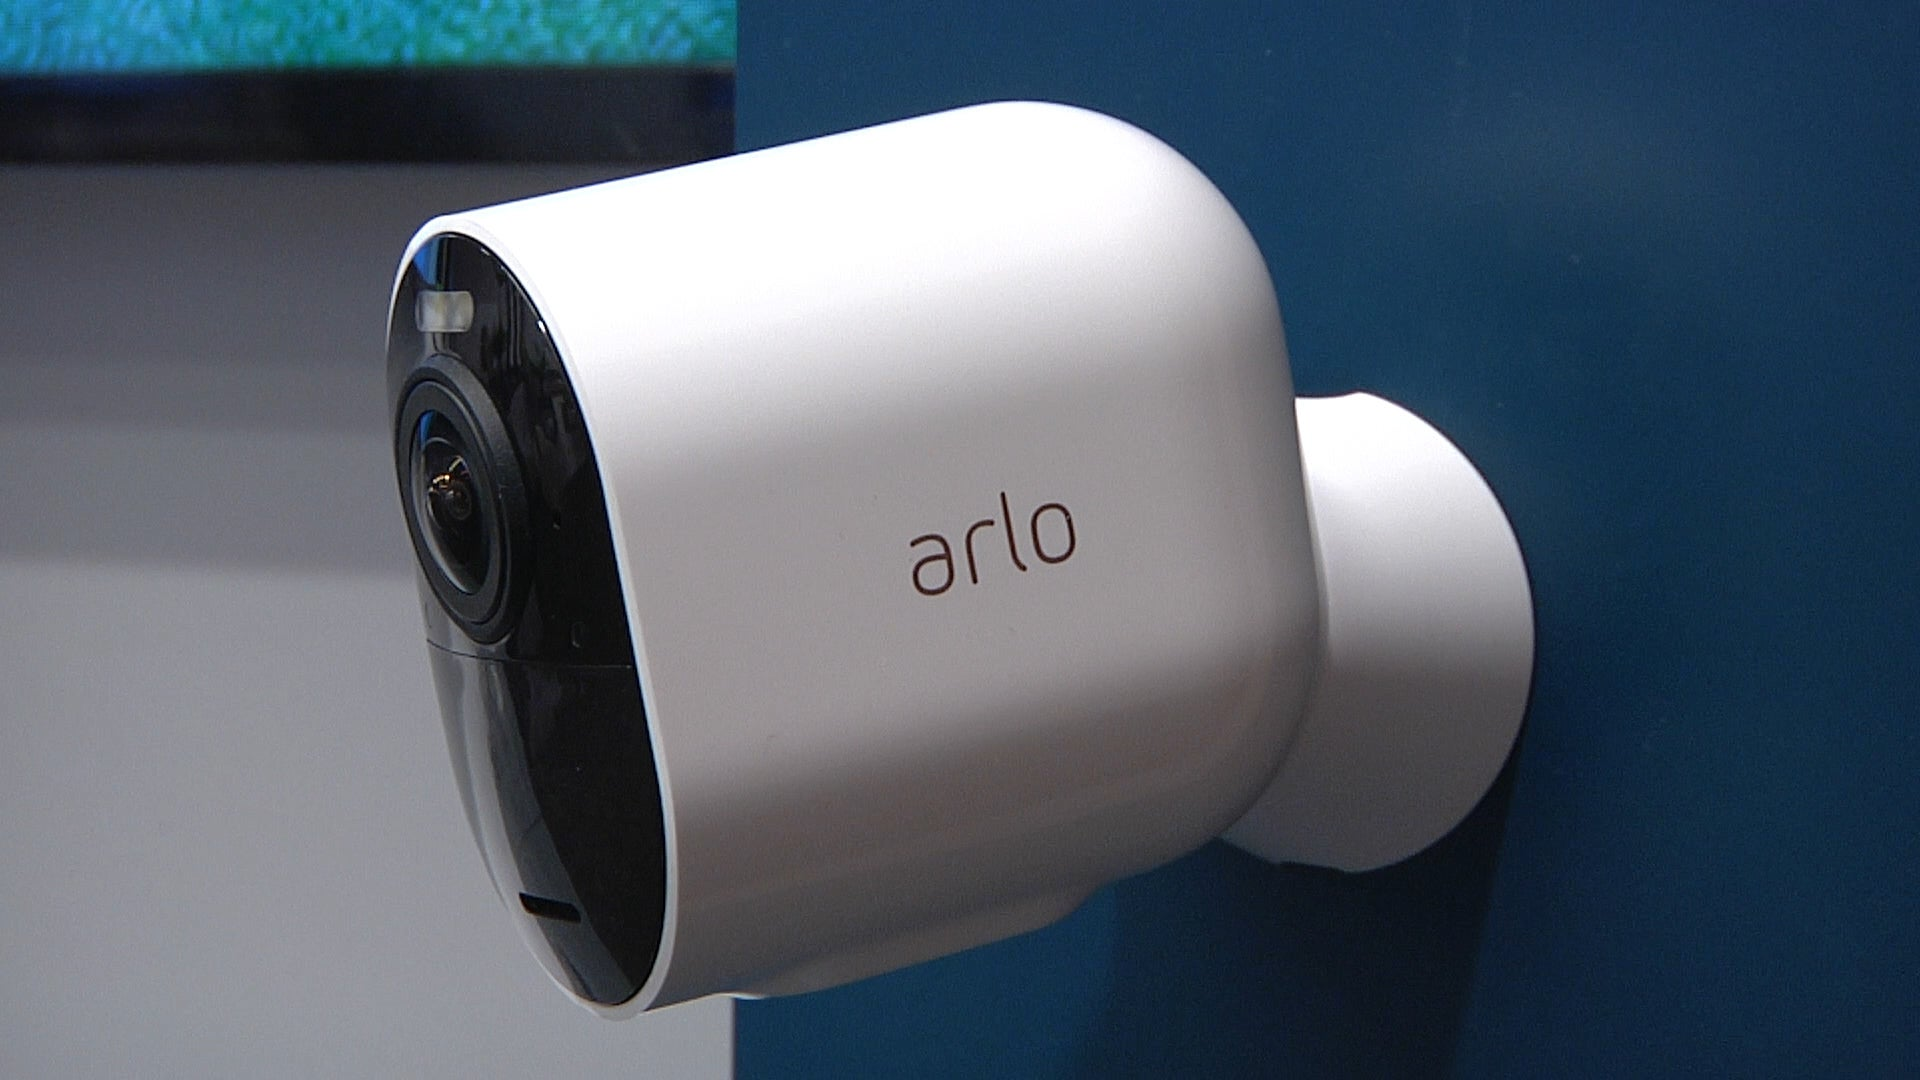 Arlo security cameras are losing one of their key benefits   TechHive